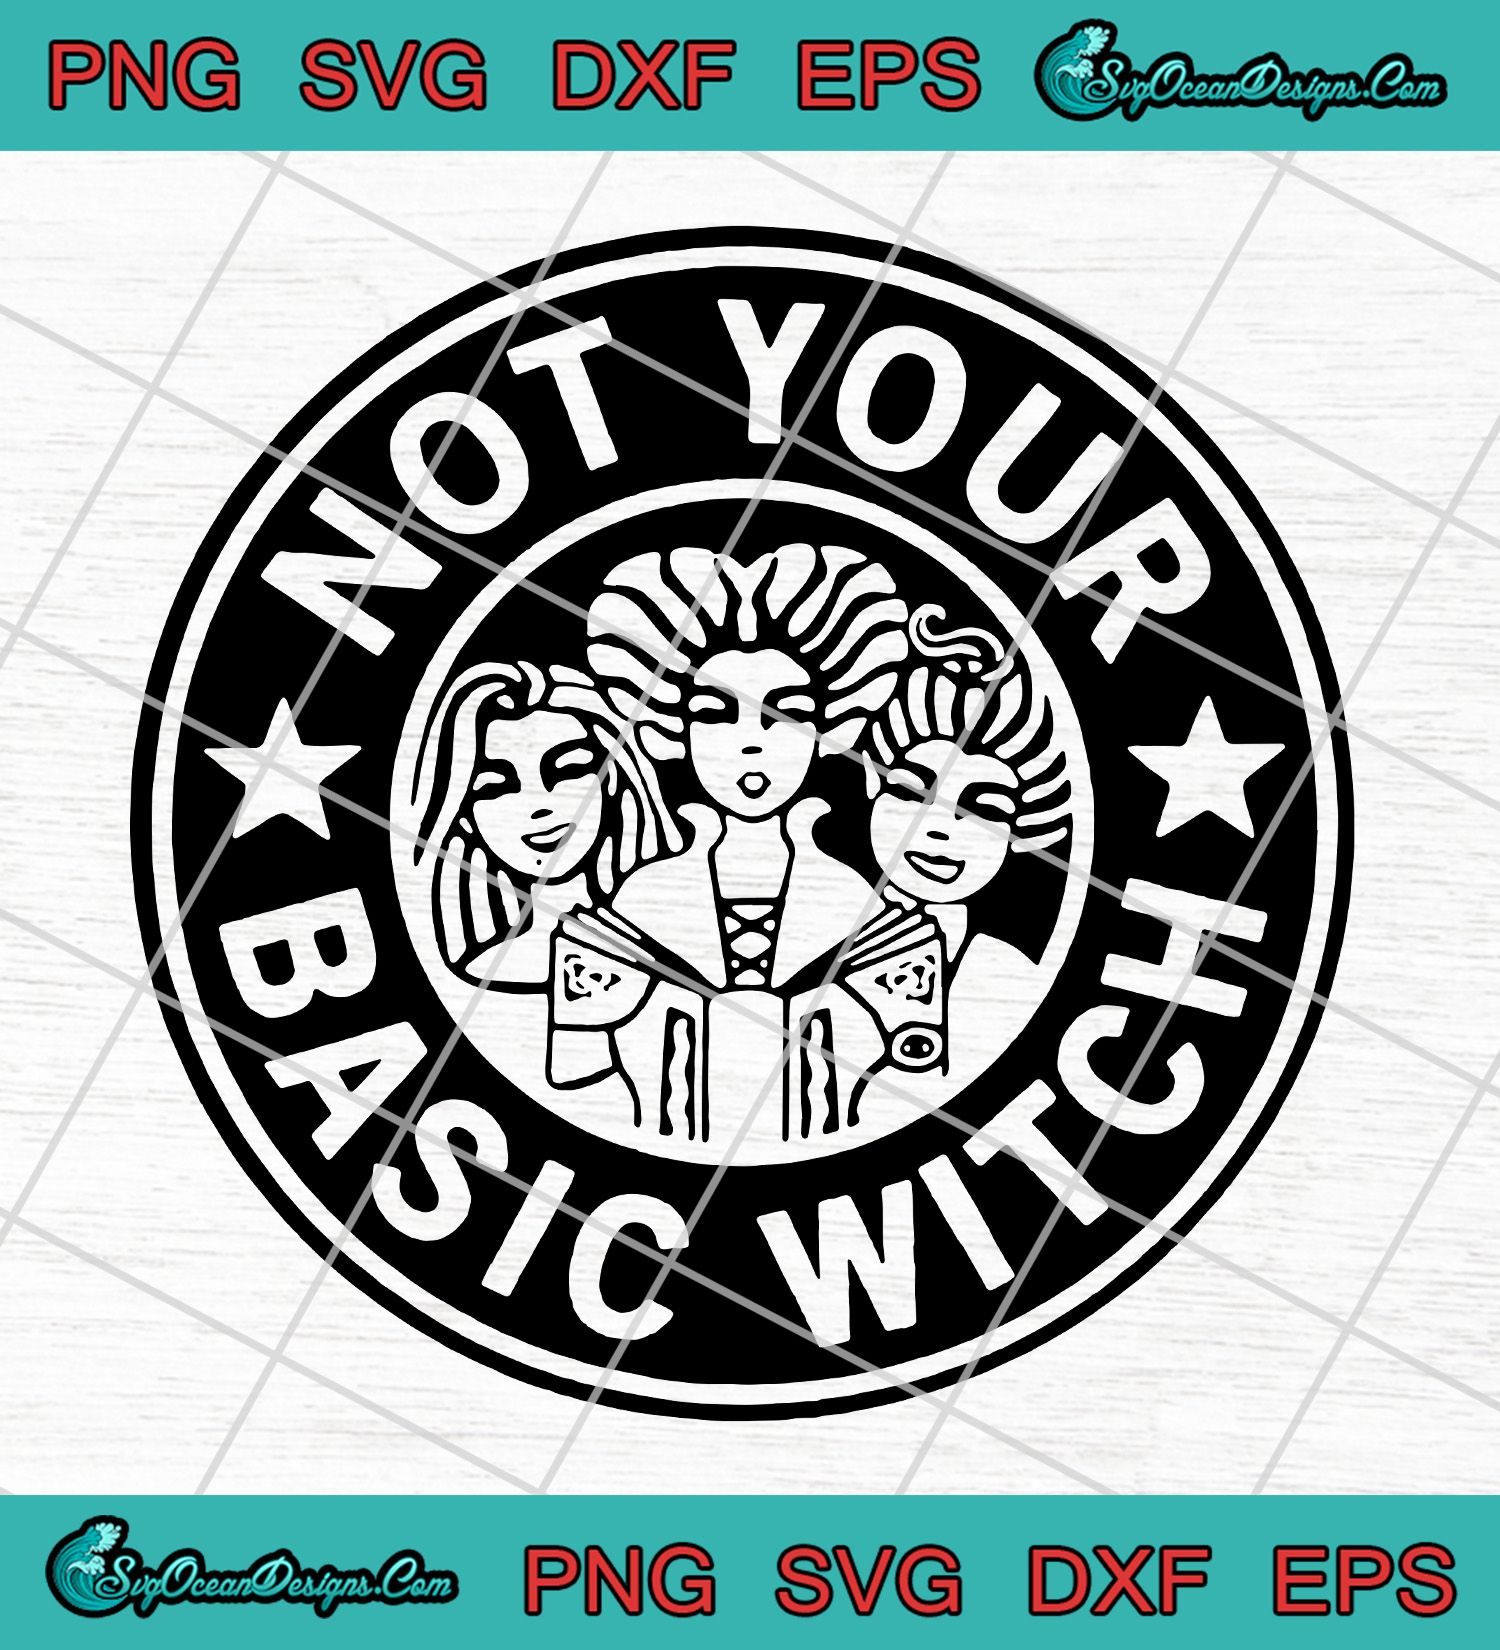 Hocus Pocus Not Your Basic Witch Starbucks Svg Png Eps Dxf Basic Witch Cricut Cricut Halloween